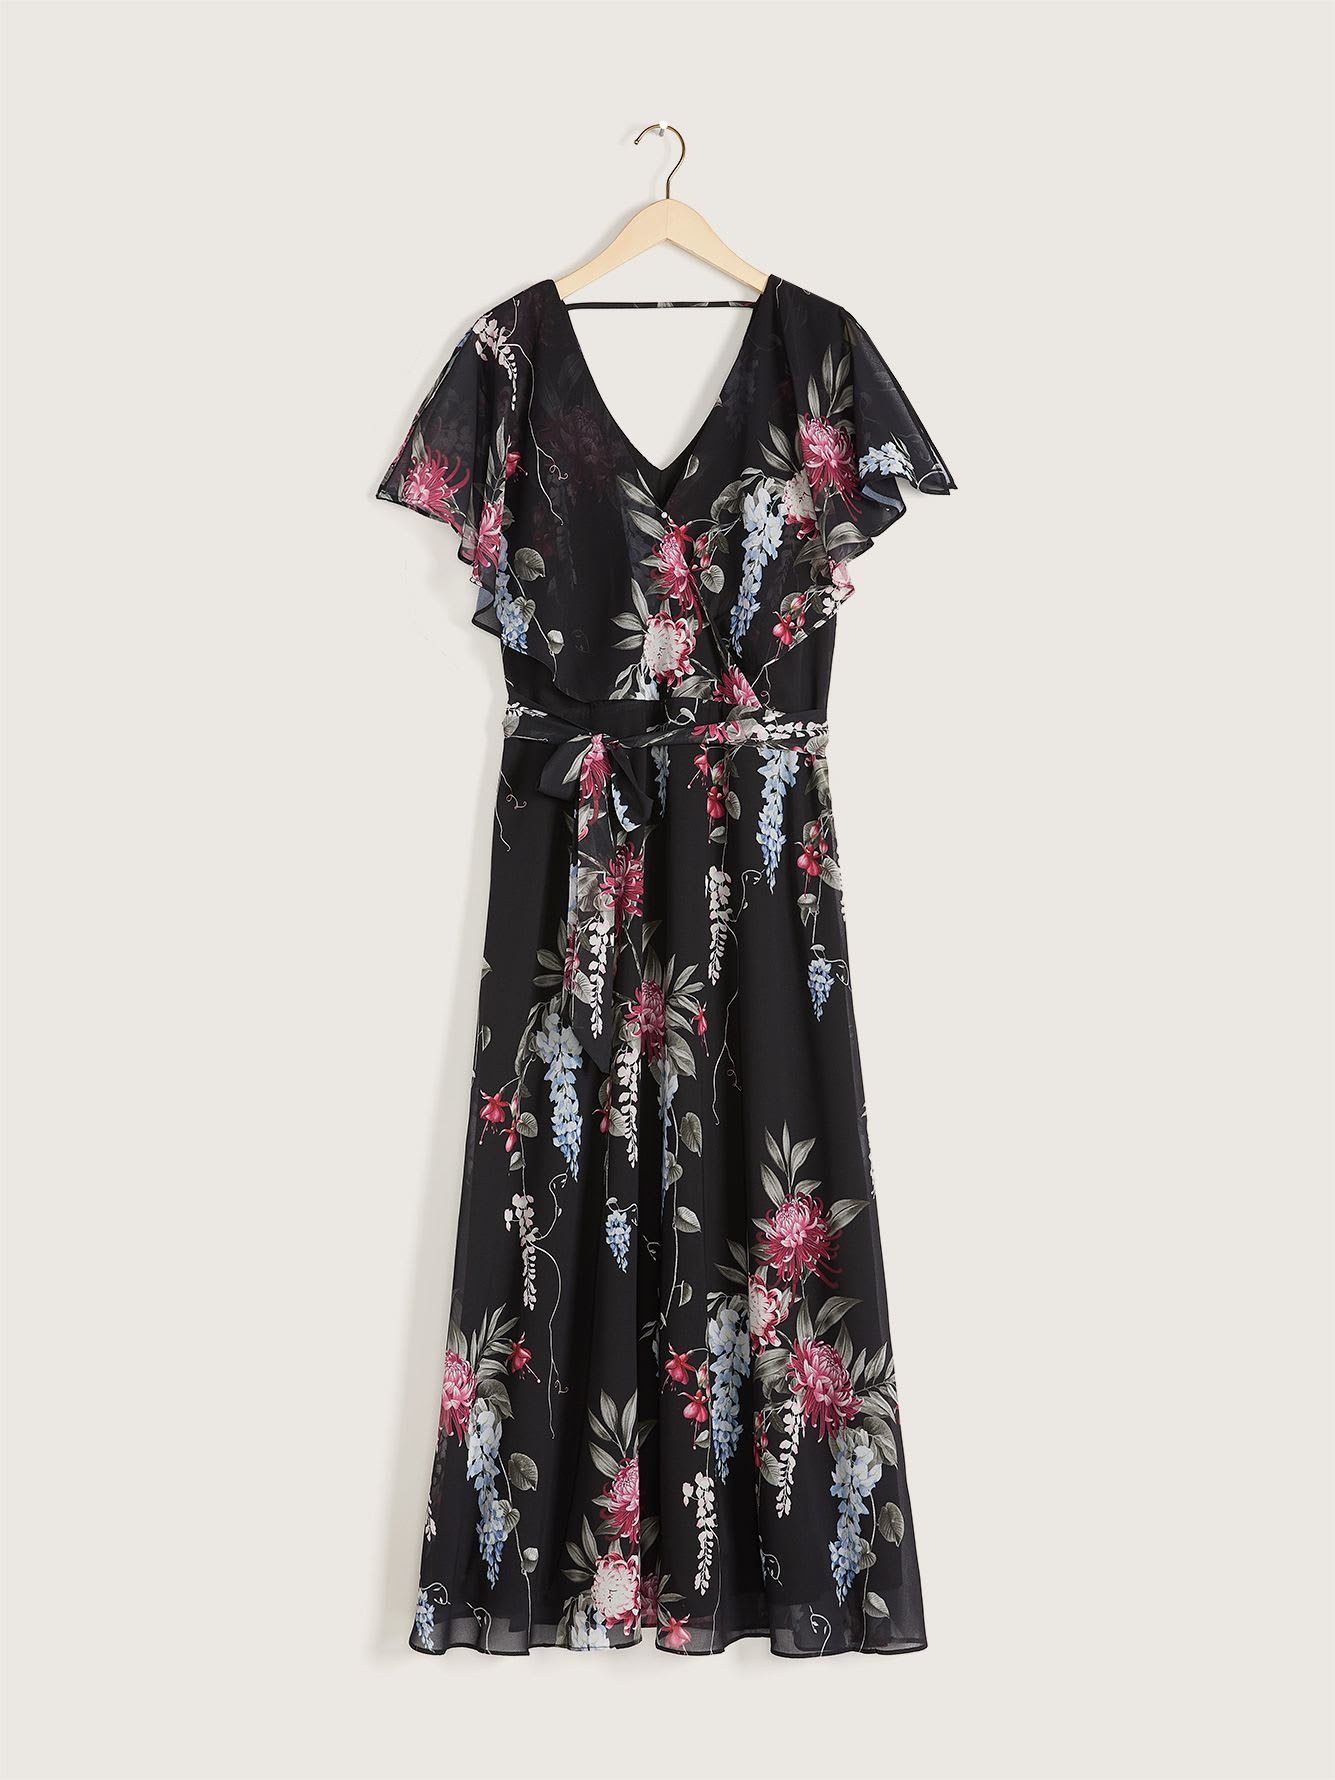 Black Floral Maxi Dress - City Chic